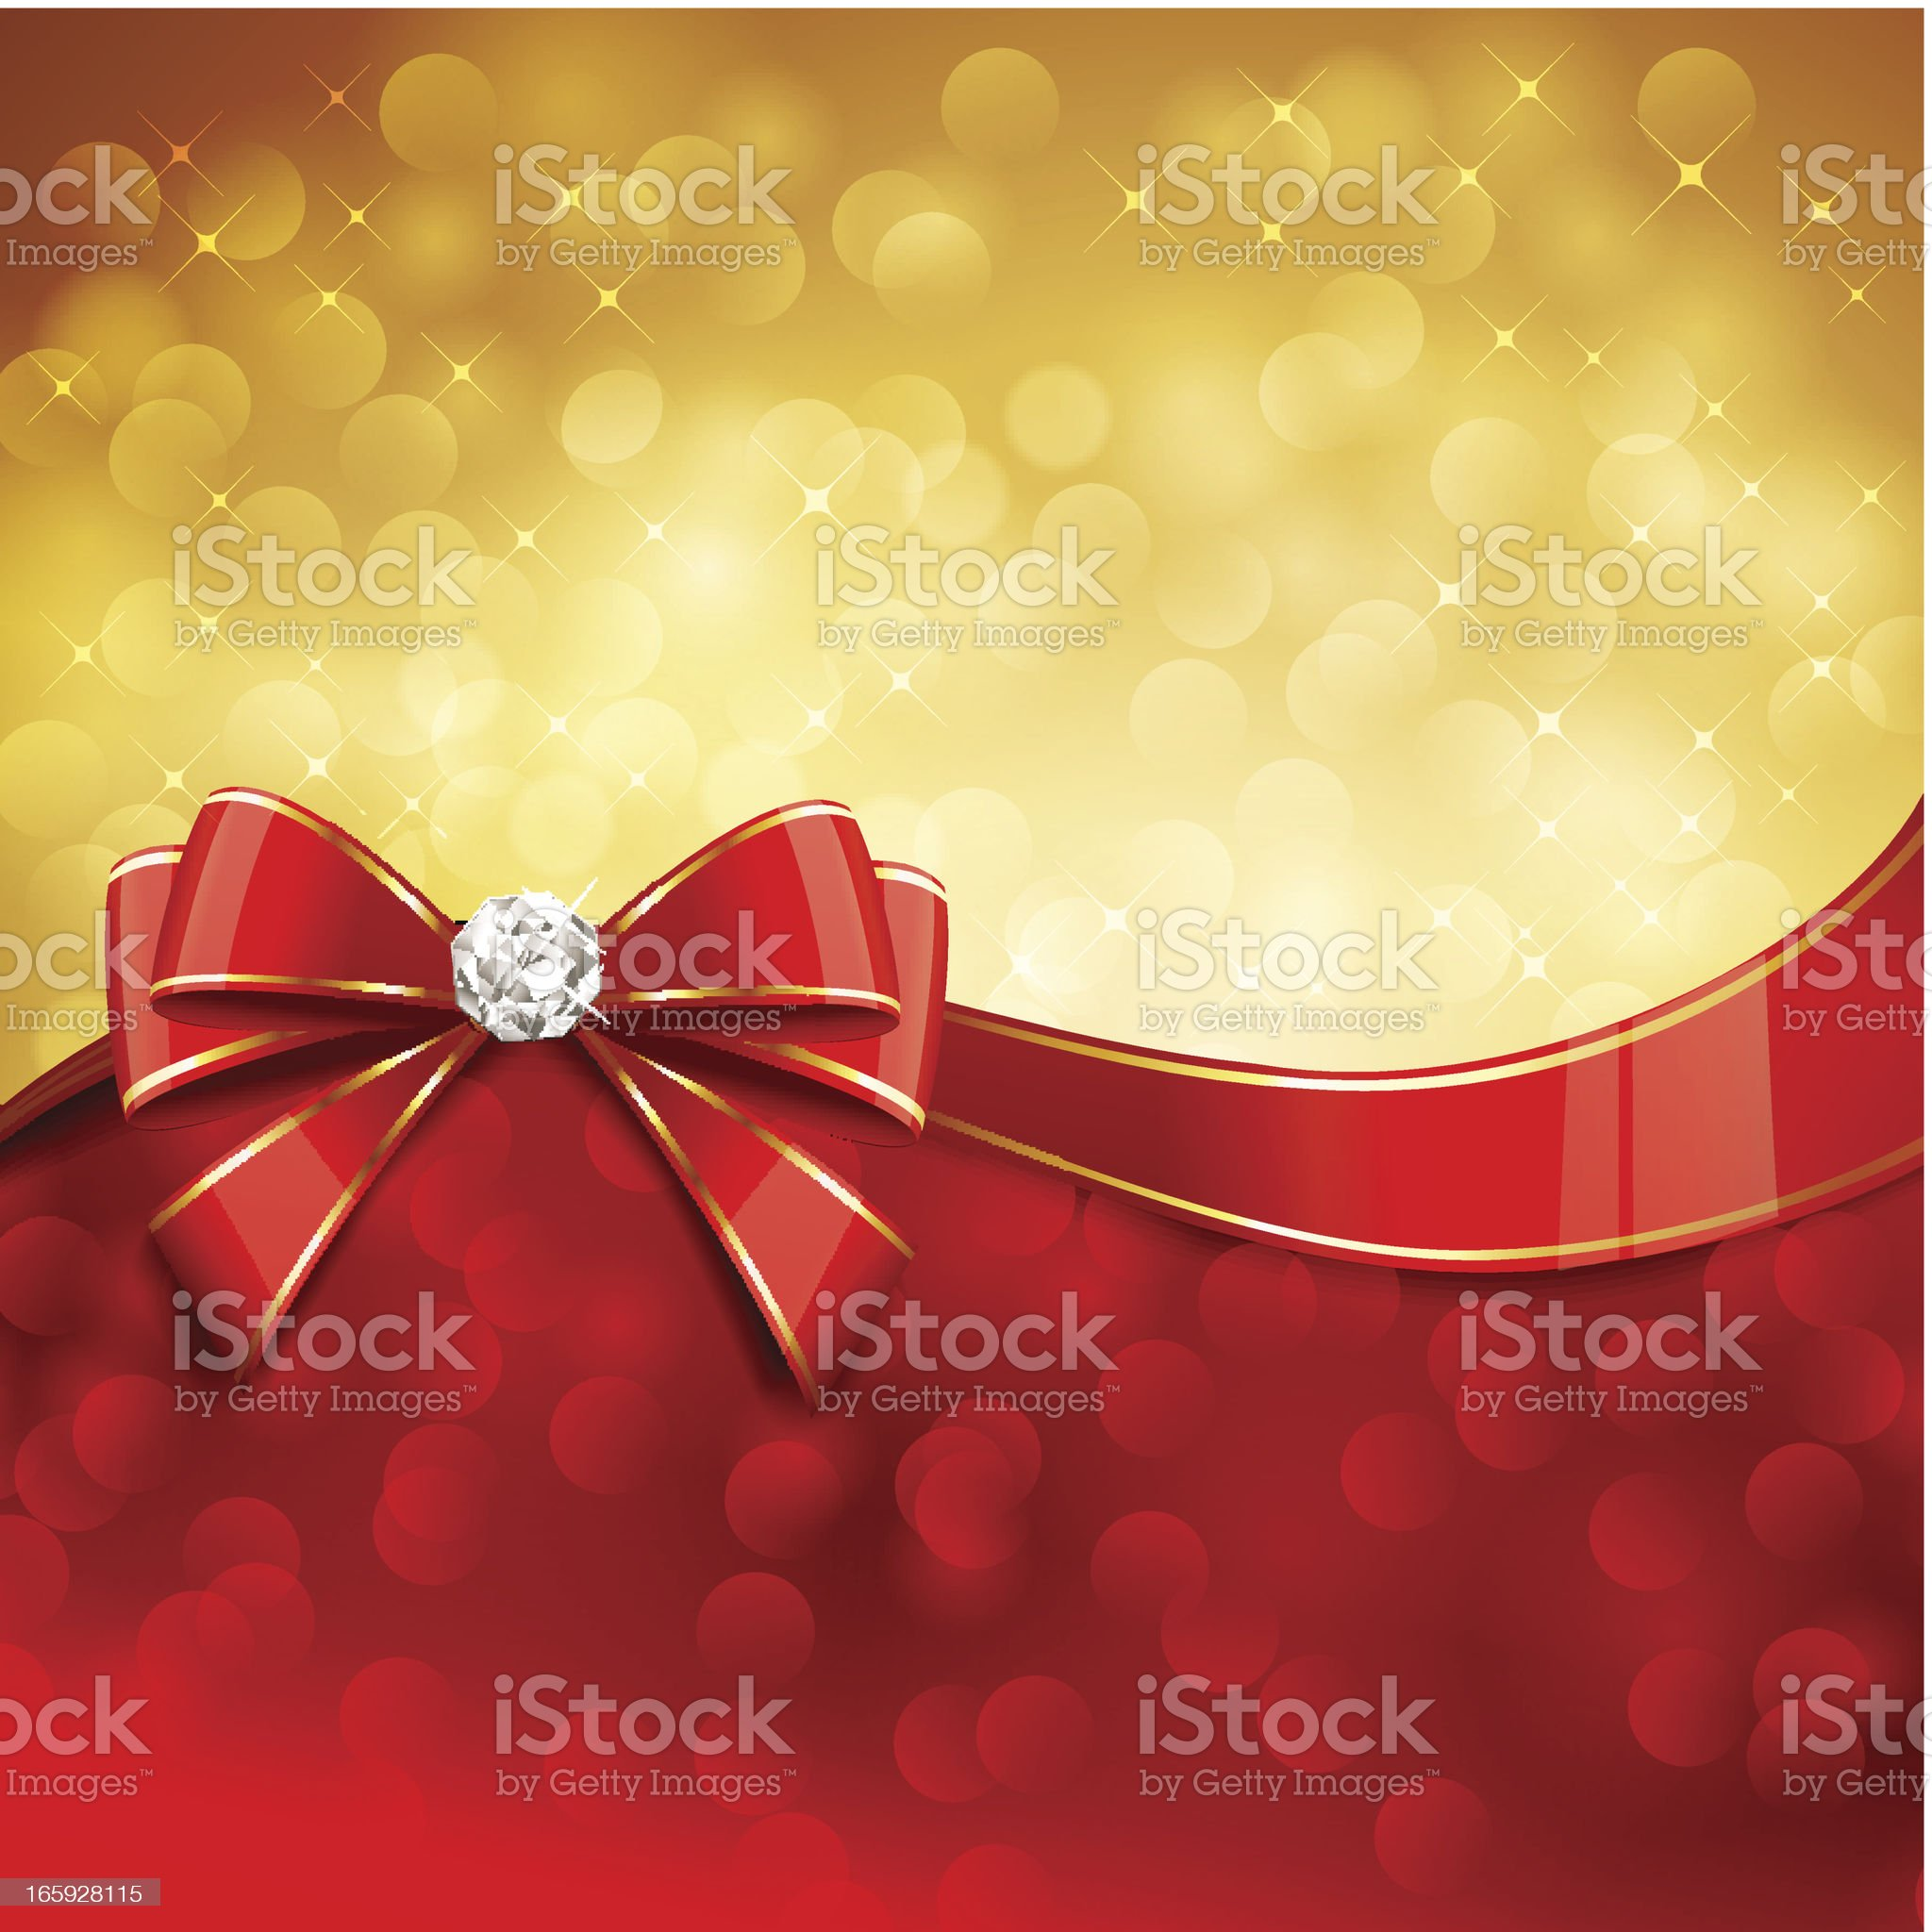 Gold and red Christmas bow with diamond background royalty-free stock vector art